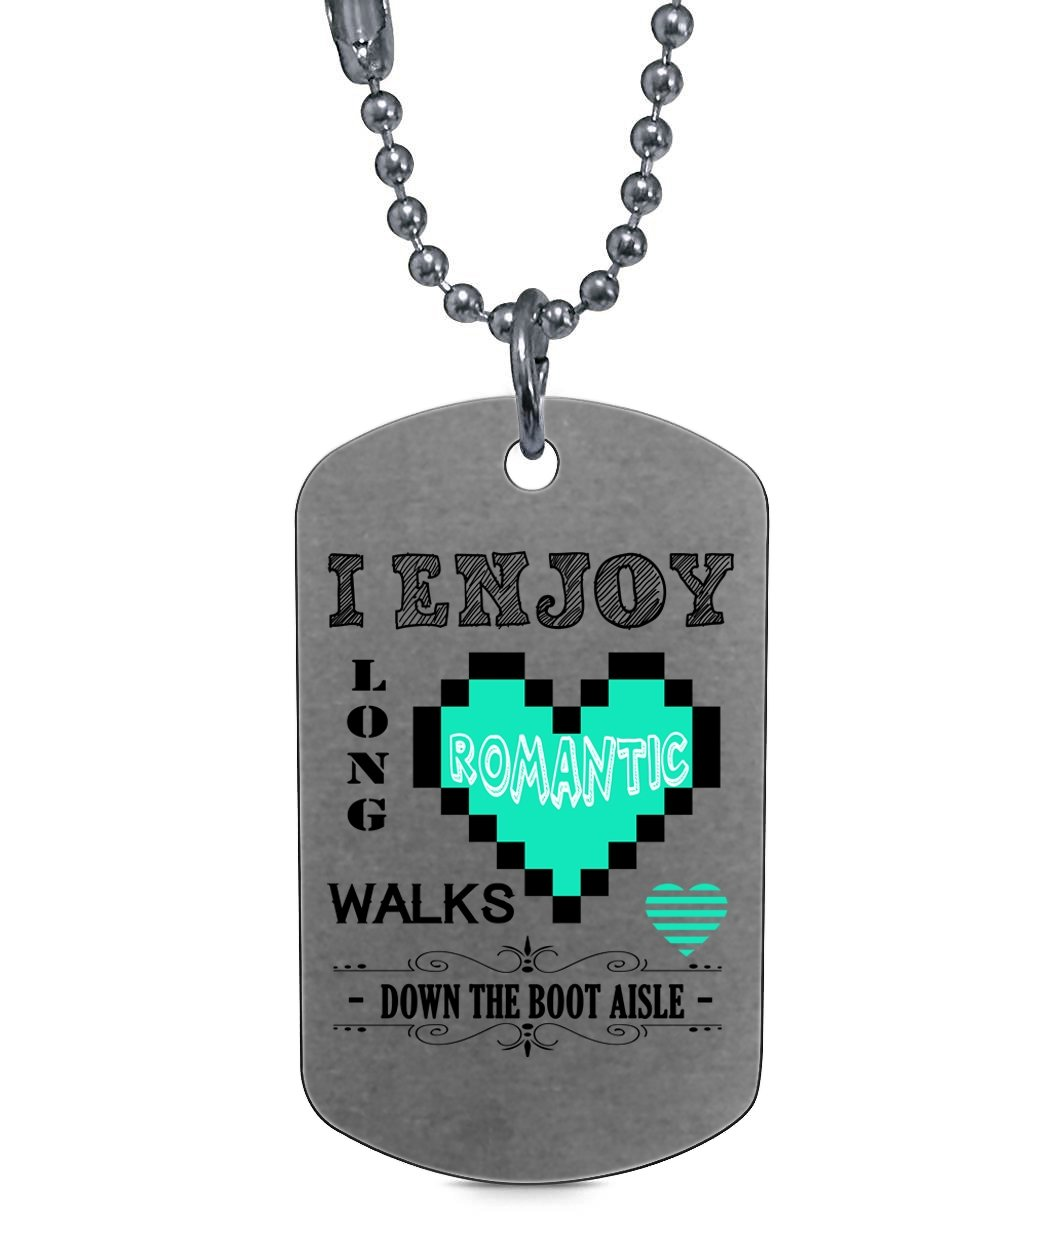 Down The Boot Aisle Necklaces, Enjoy Long Walks Dog Tag (Dog Tag Necklaces - Silver)